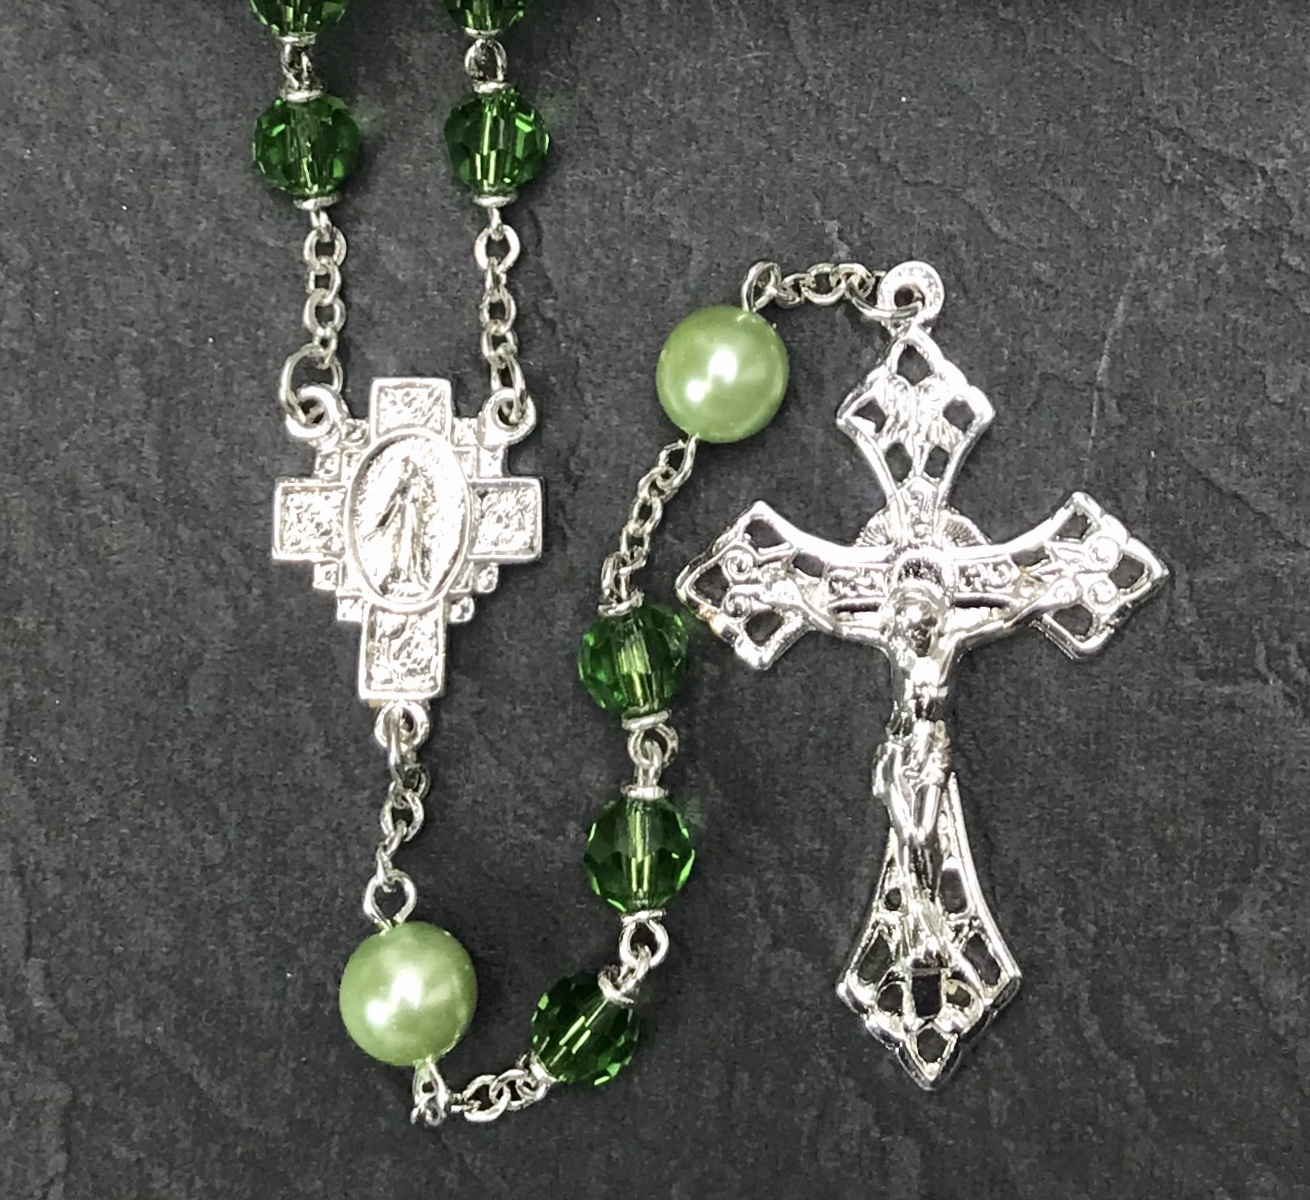 6mm PERIDOT TIN CUT WITH PEARL OUR FATHER BEADS WITH STERLING SILVER PLATE ROSARY BOXED